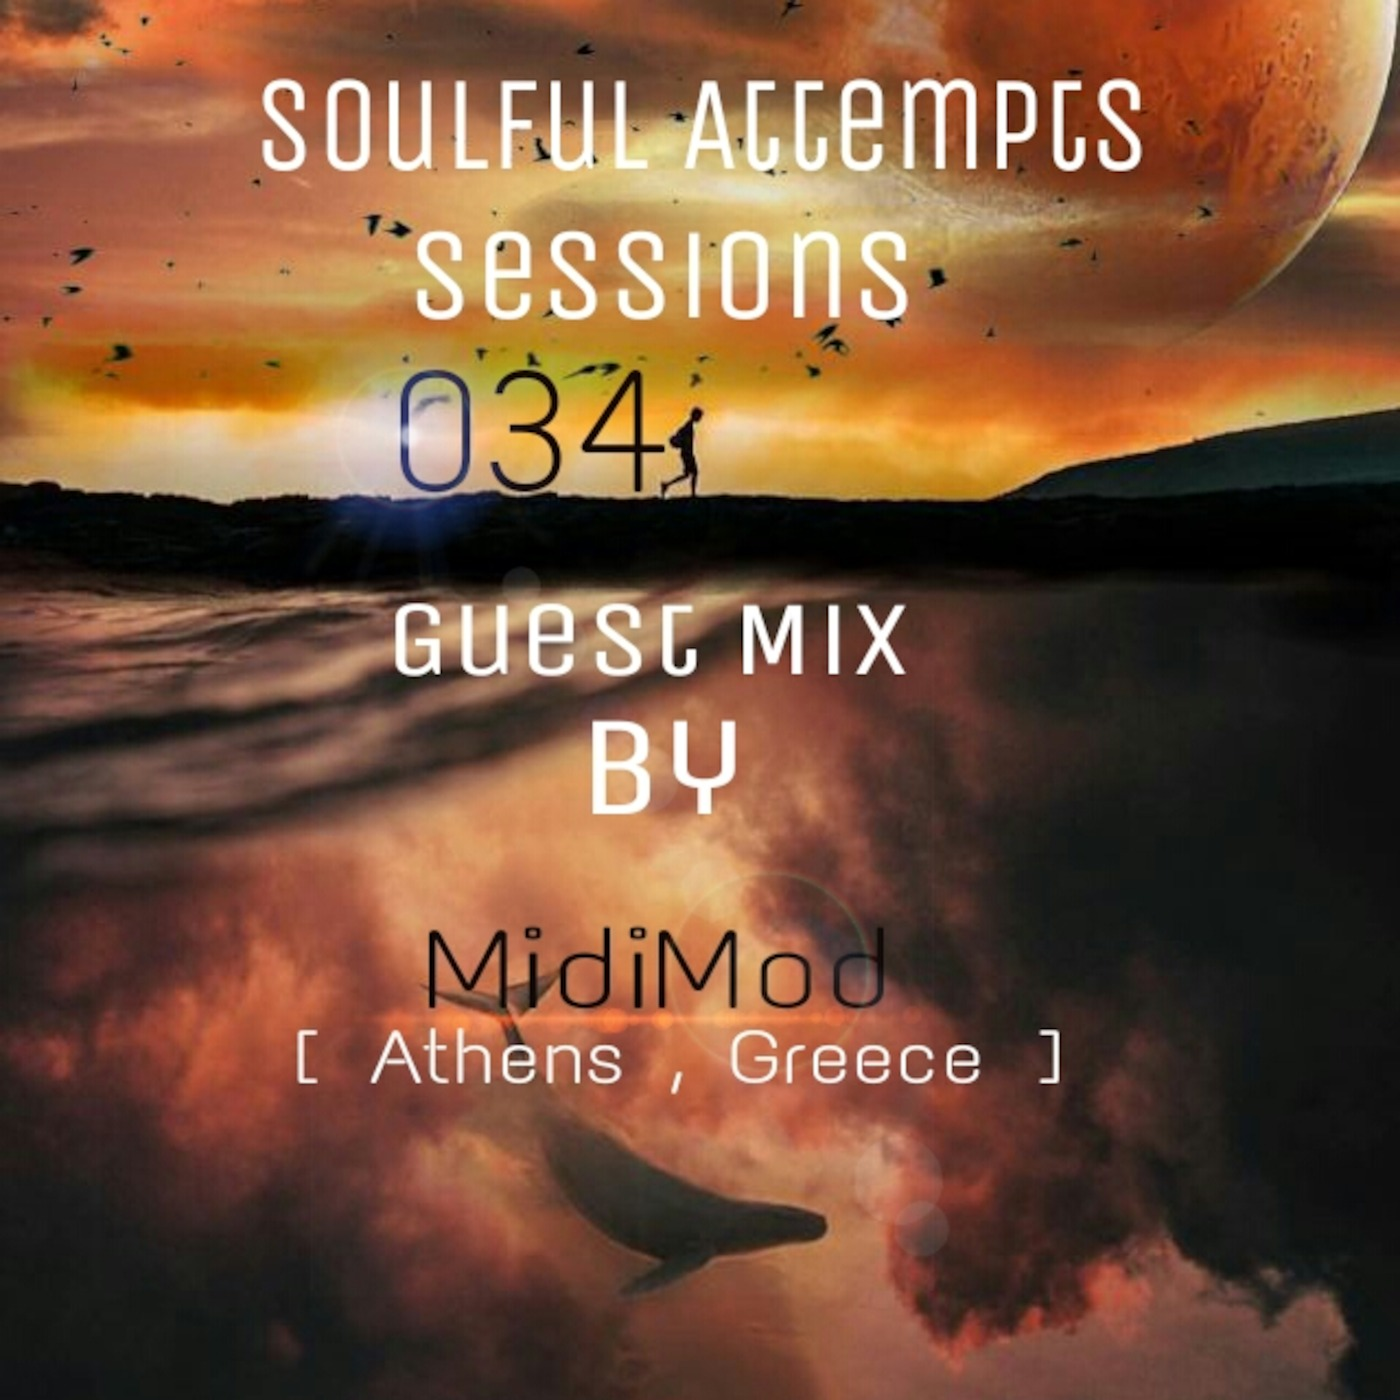 Soulful attempts sessios 034 guest mix by midimod athens greece itunes pic publicscrutiny Images